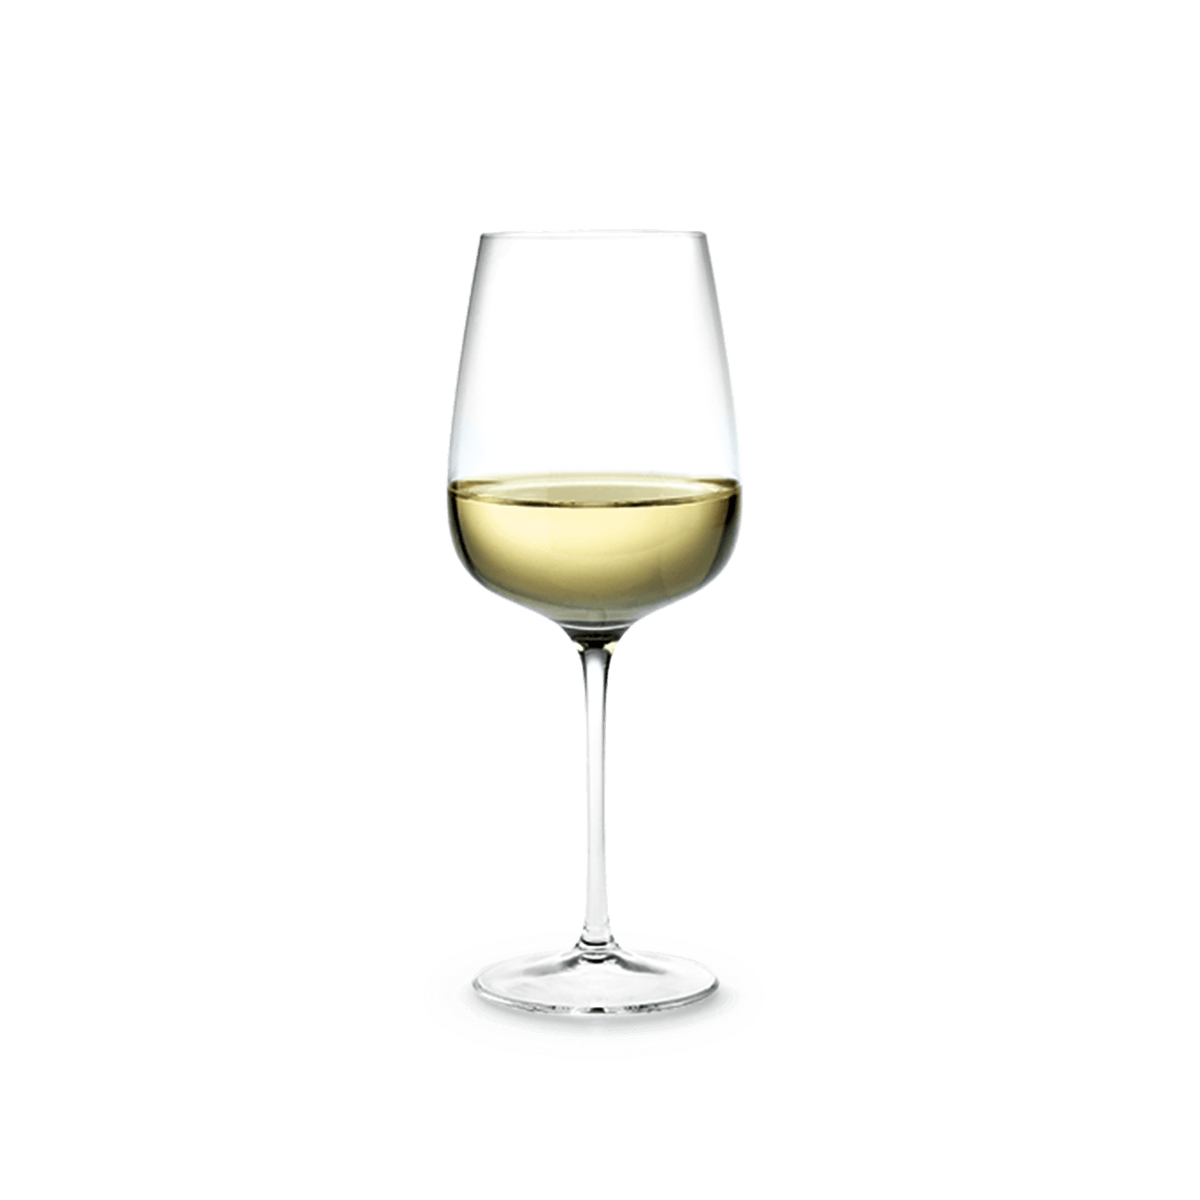 Glass of wine png. Bouquet dessert bouquetwhitewineglassclearcl